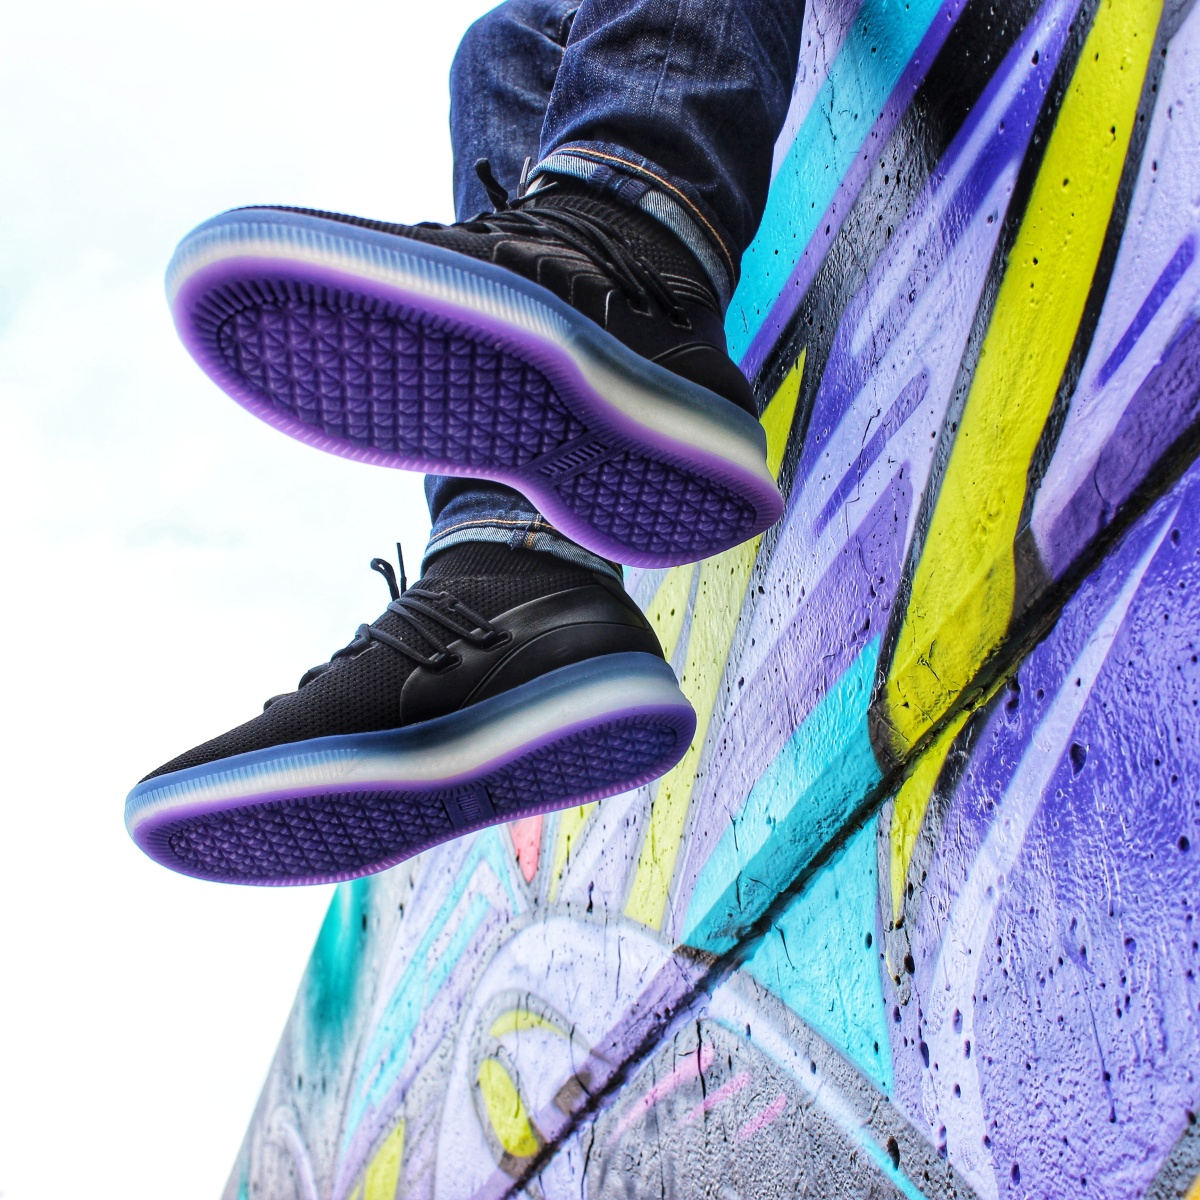 Puma jumps back into Basketball with the Clyde Court Disrupt – Sneaker  Closet ad8f6439c